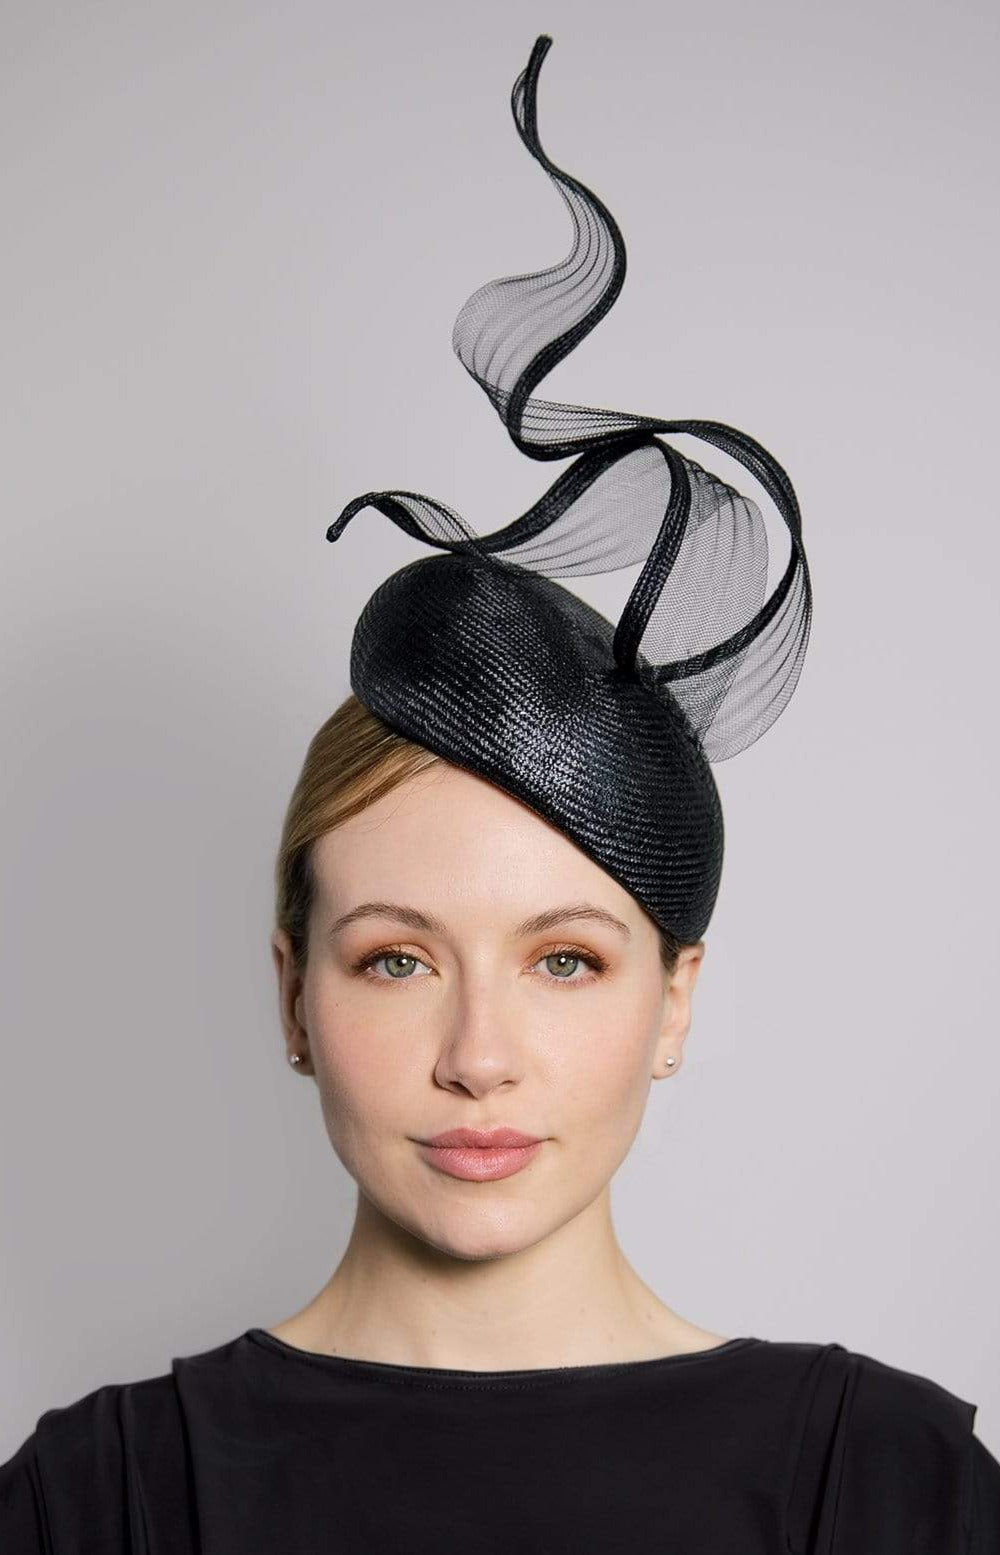 Percher Hat with Twist - Evgenia